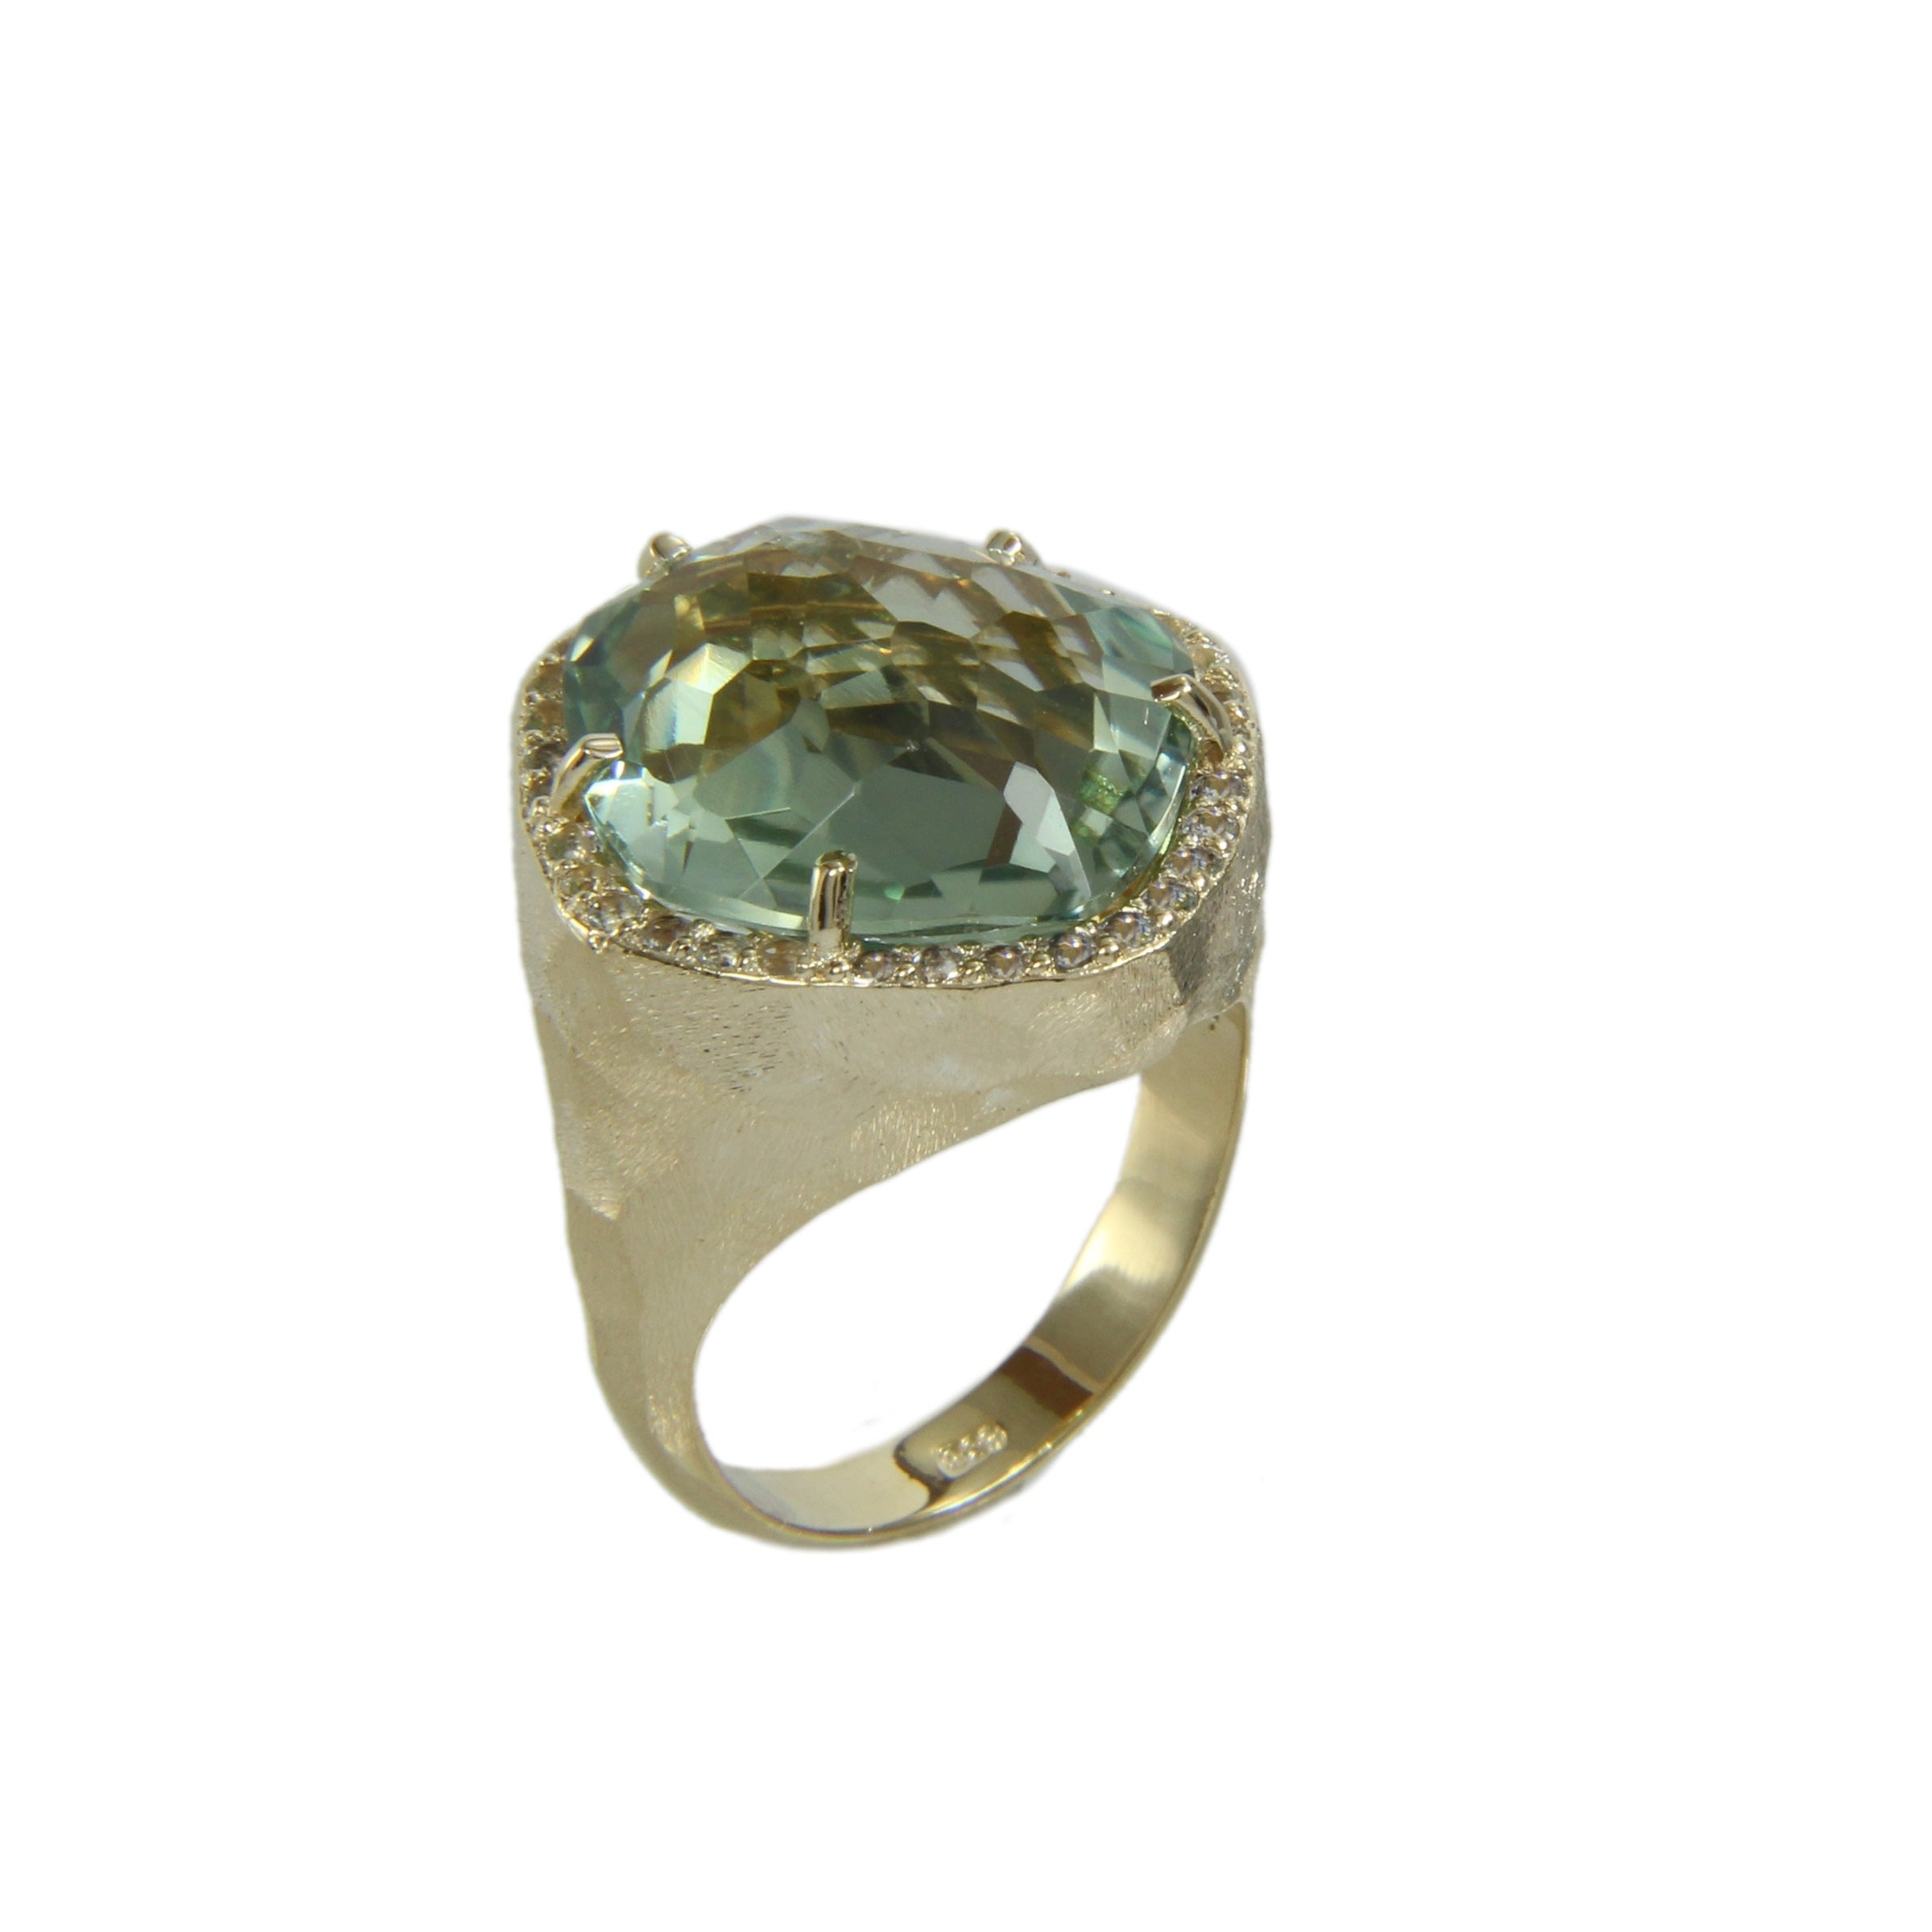 Oval Prasiolite and White Topaz Ring, Sterling Silver and Vermeil